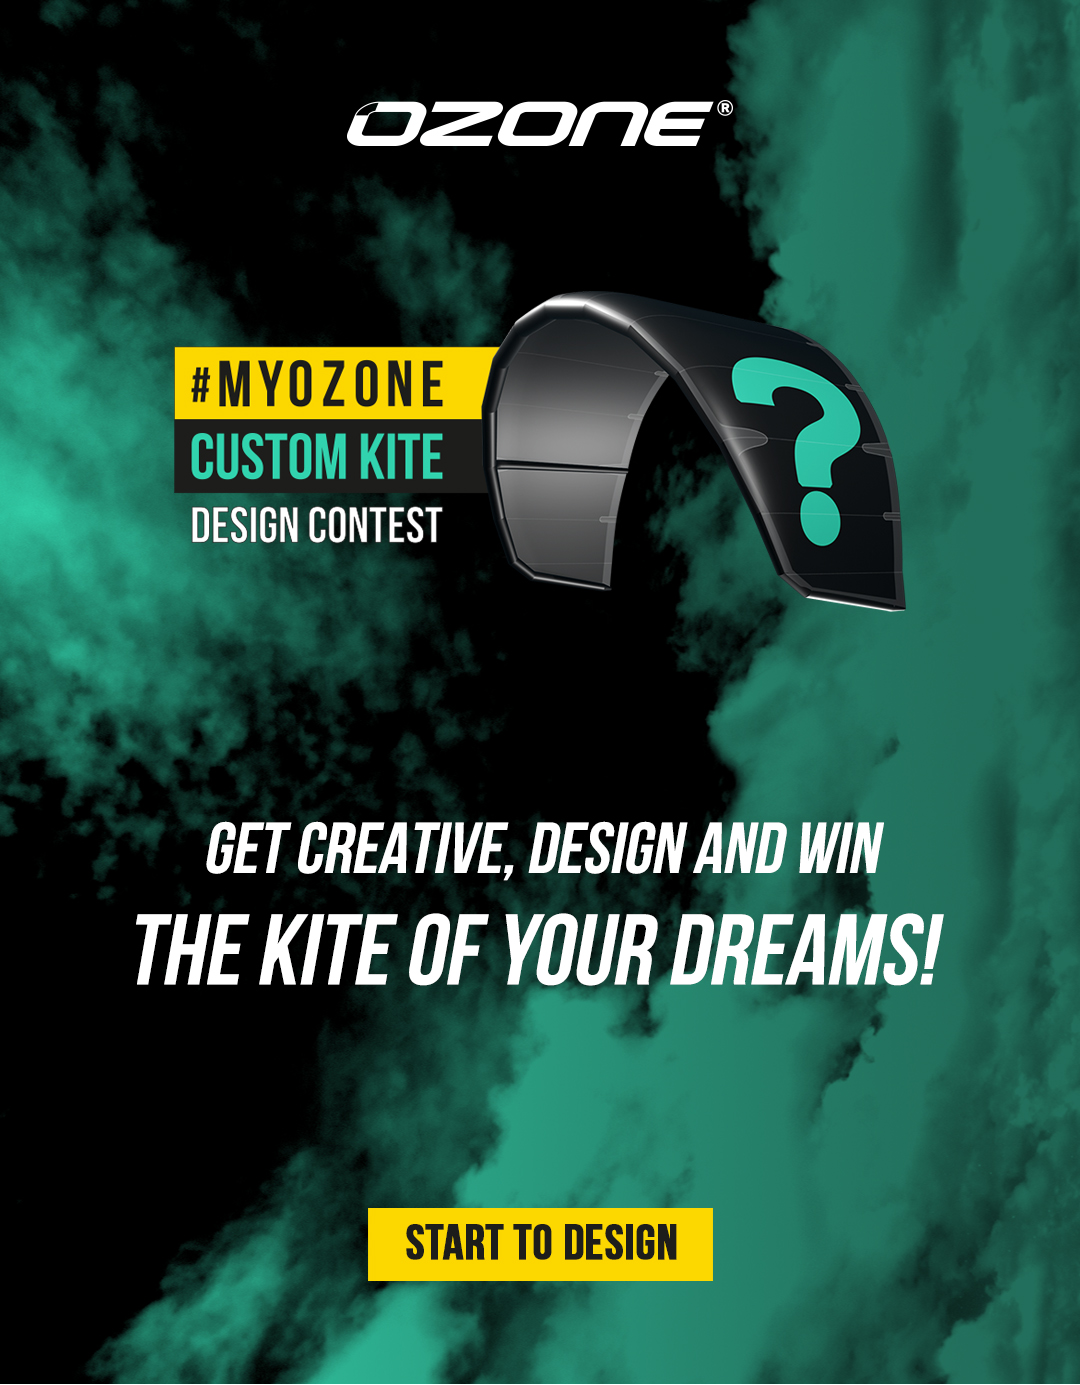 #myOzone Custom Kite Design Contest. Start to design today!